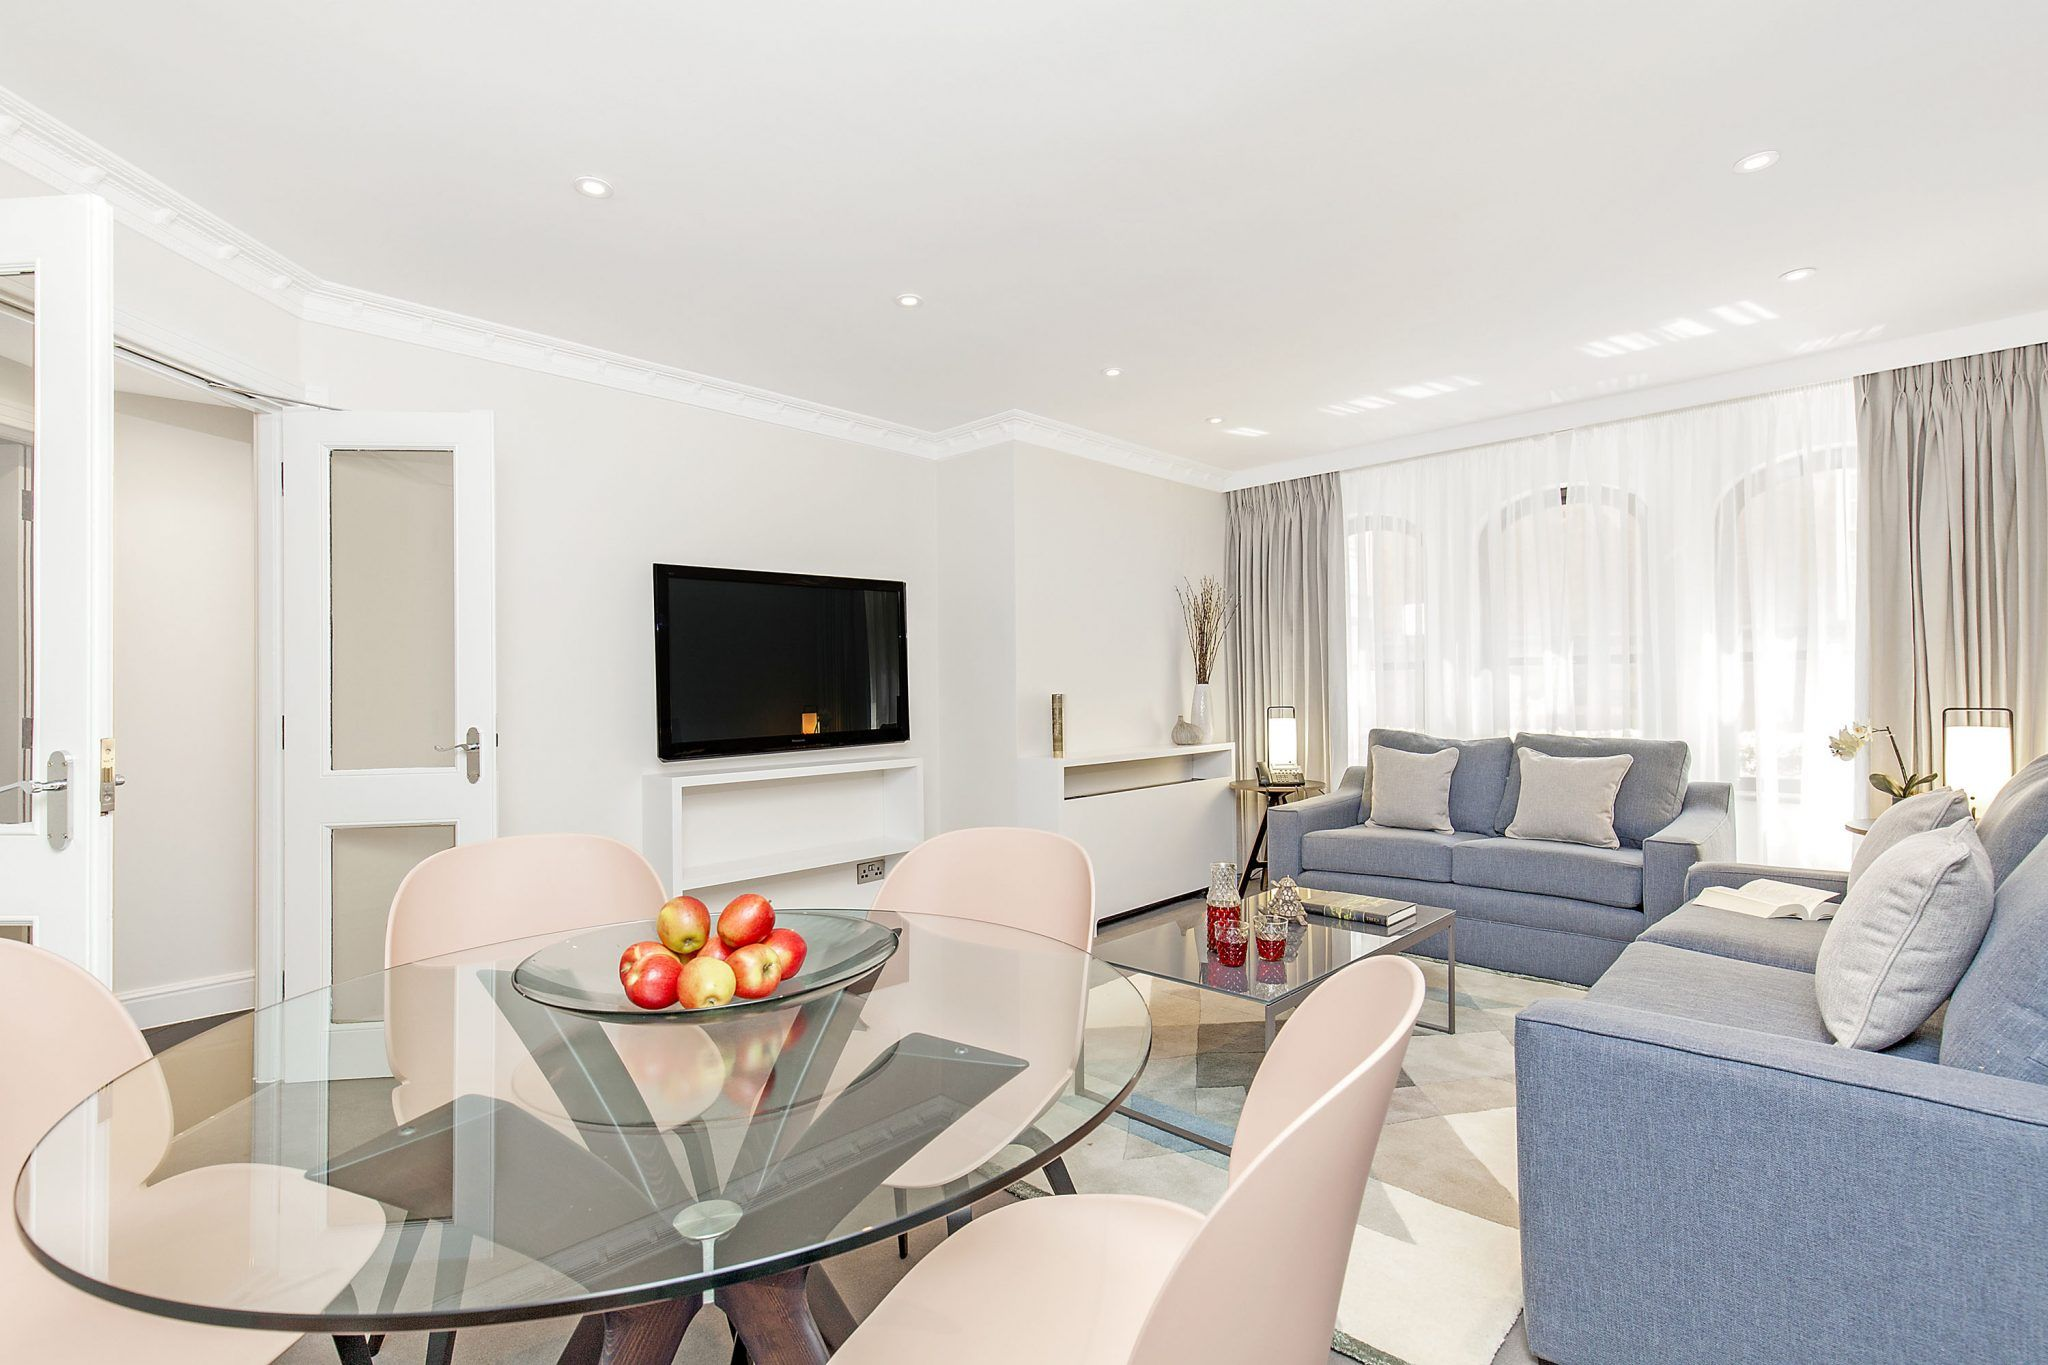 Two Bedroom Deluxe Apartments Offer More Space More Comfort And More Luxury Londonholidayhome Londonva Mayfair House Bedroom Apartment 2 Bedroom Apartment